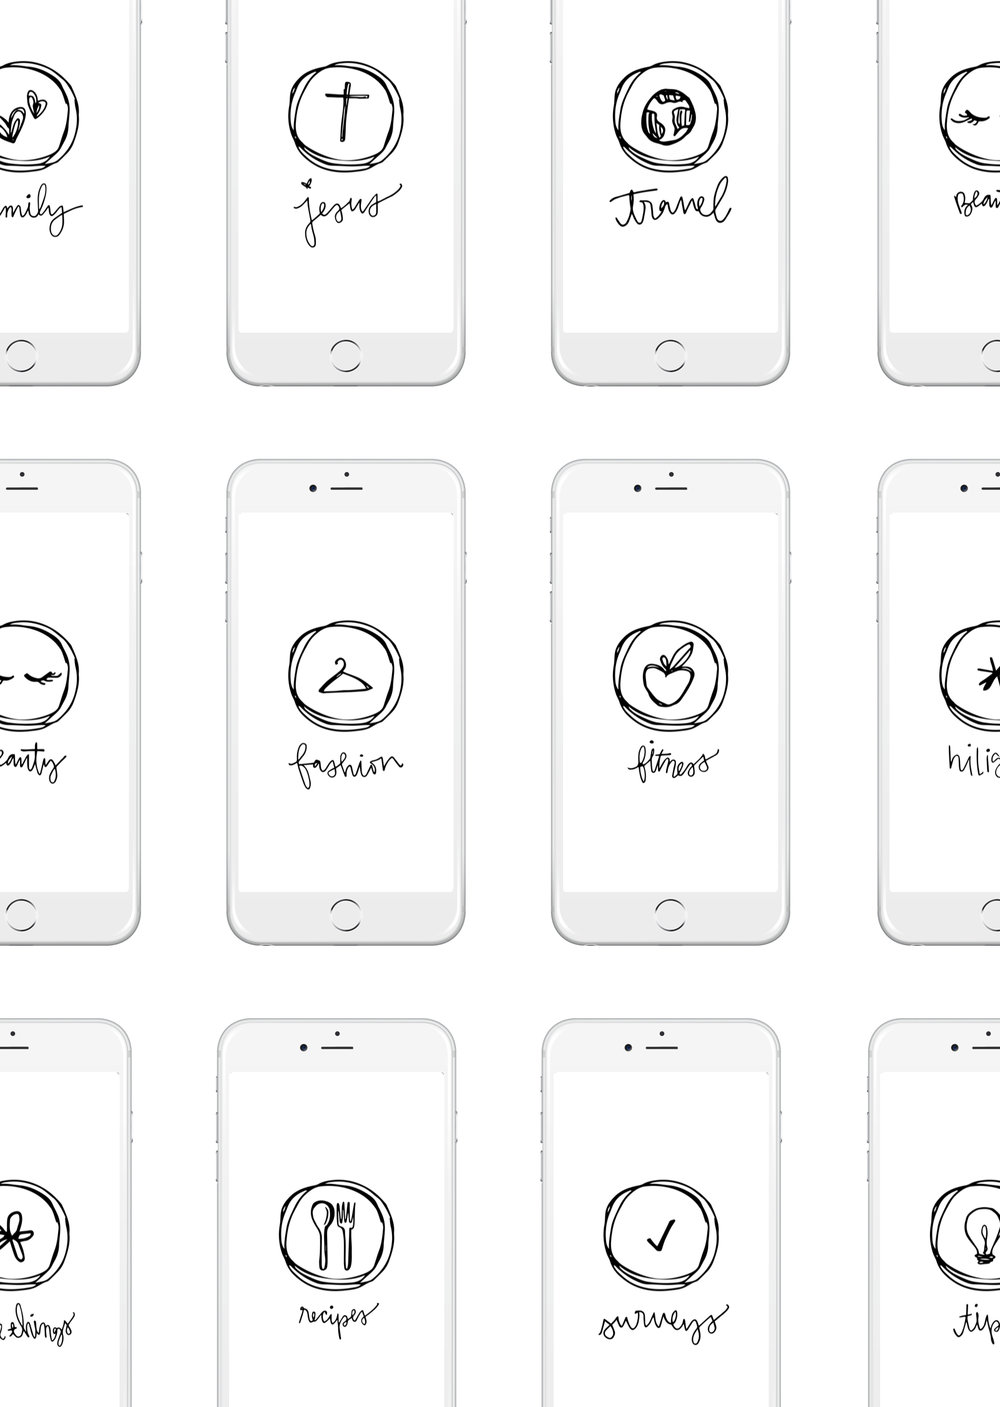 B+W Icon Set - Full set of 19 screens to use for your instagram hilights!CLICK HERE TO DOWNLOAD